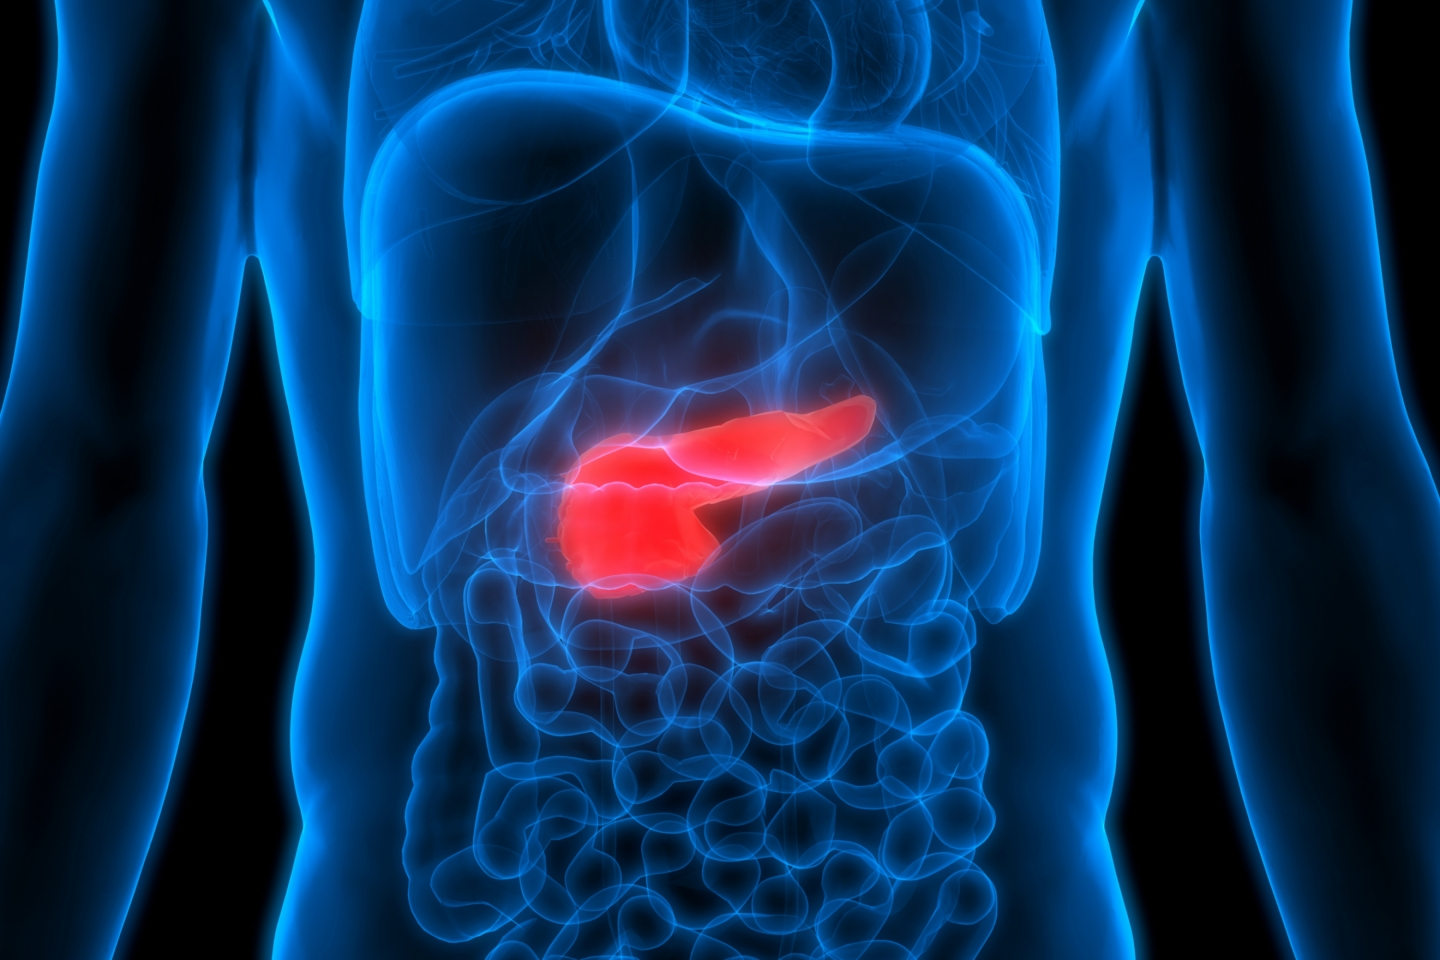 Diagram that shows where the pancreas is located in the body